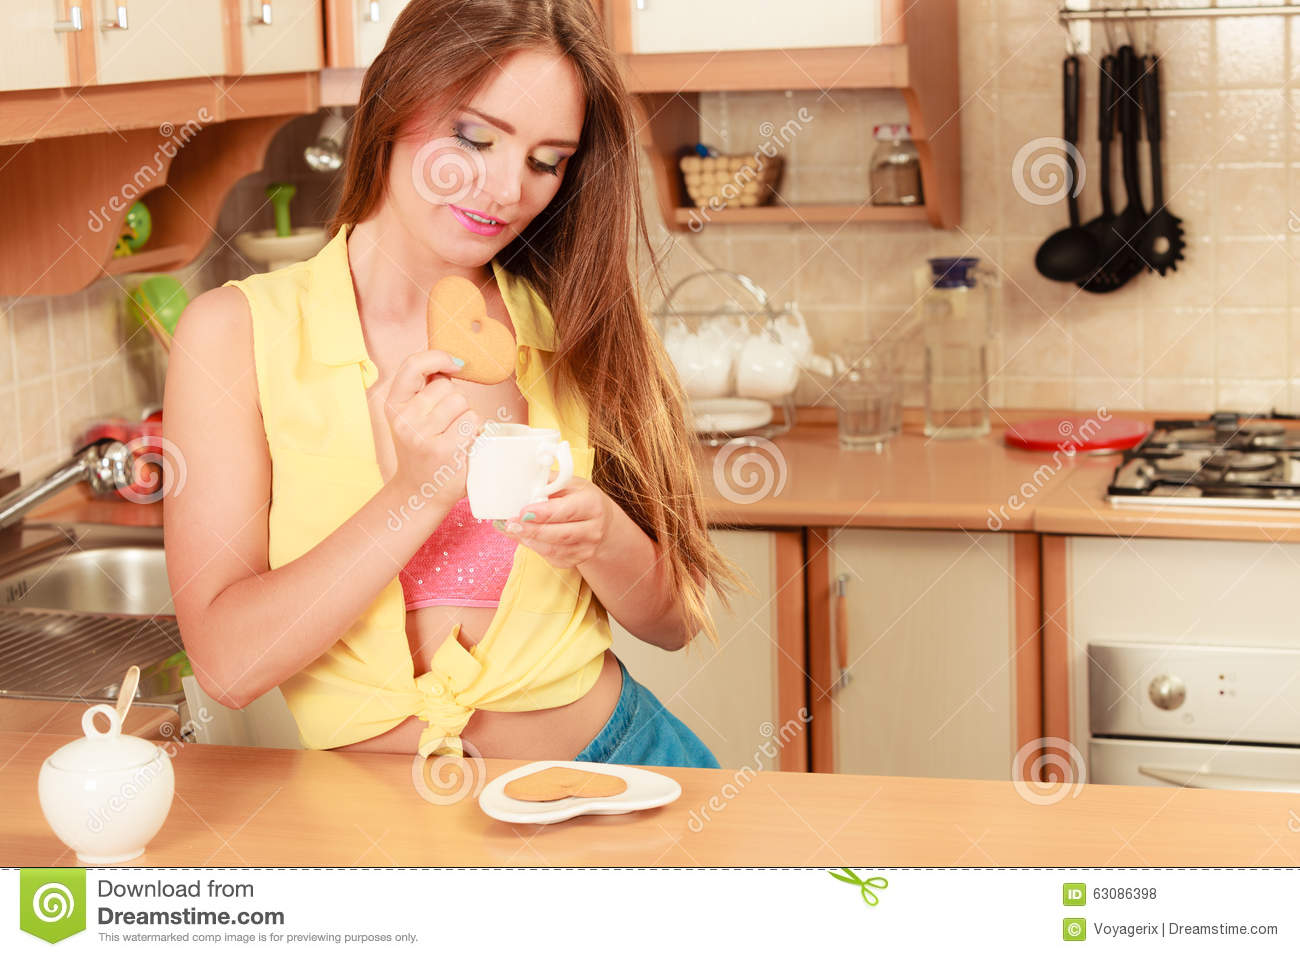 Download Fille Avec Du Café De Thé Mangeant Le Biscuit De Pain D'épice Photo stock - Image du broche, thé: 63086398